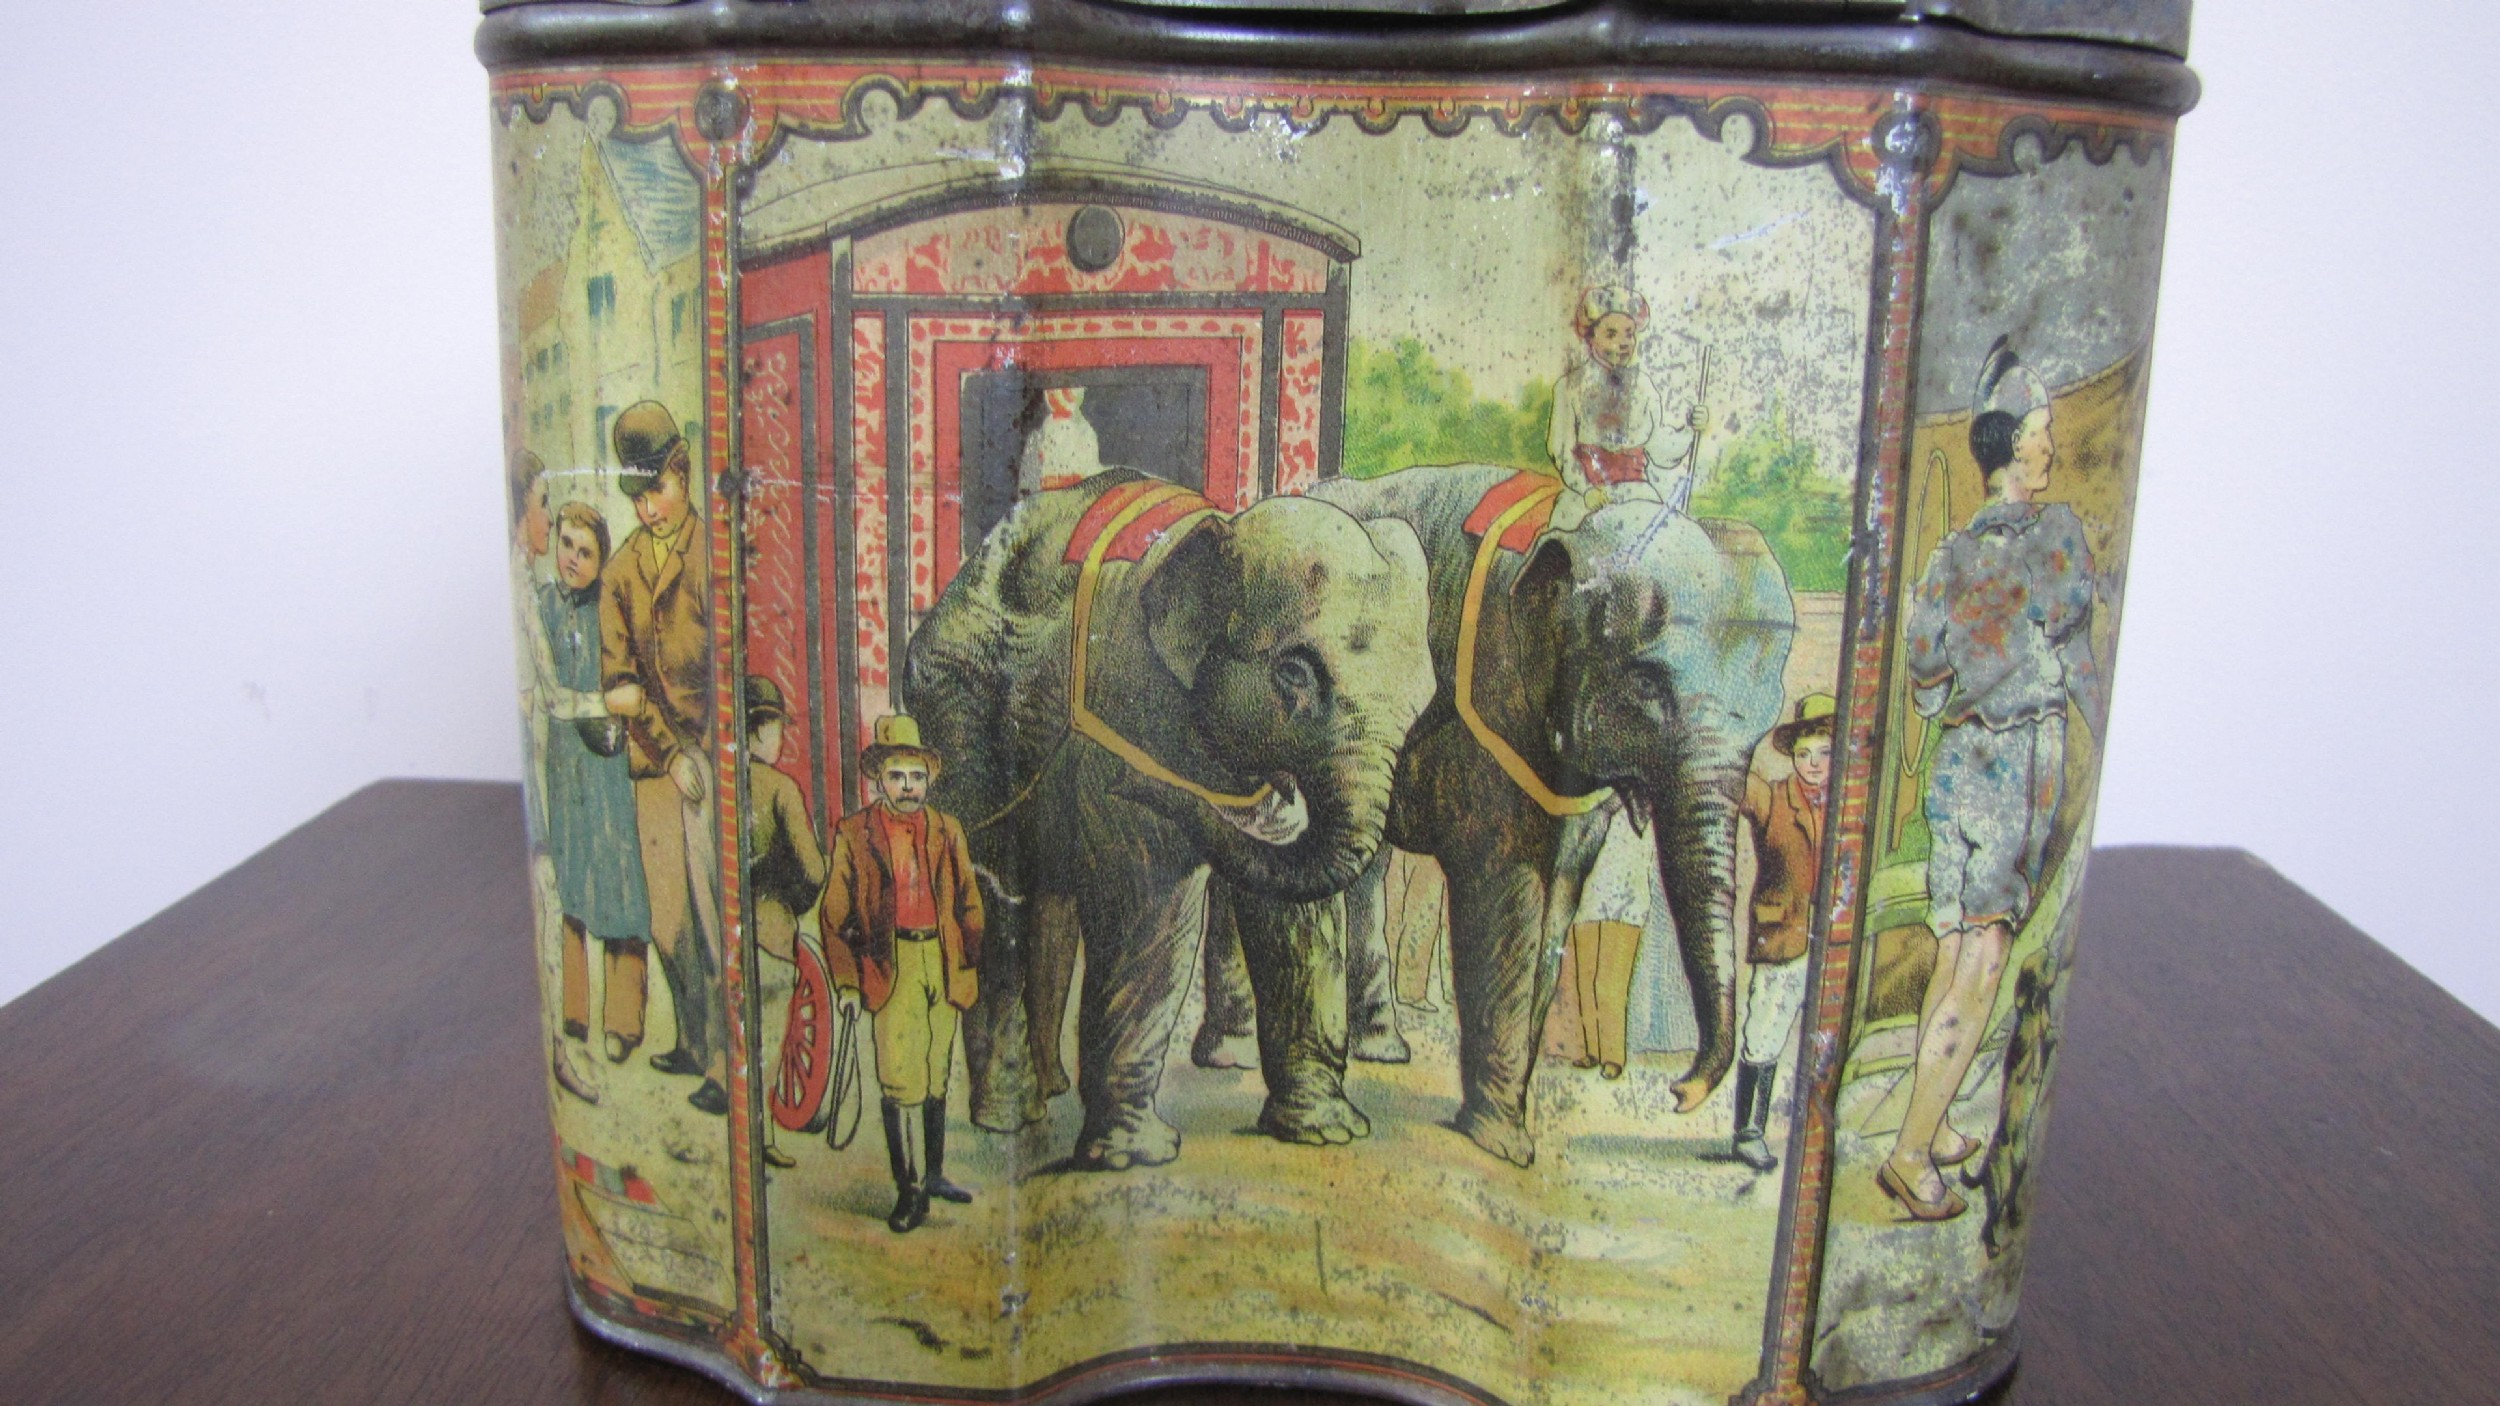 huntley palmers circus biscuit tin 1890's